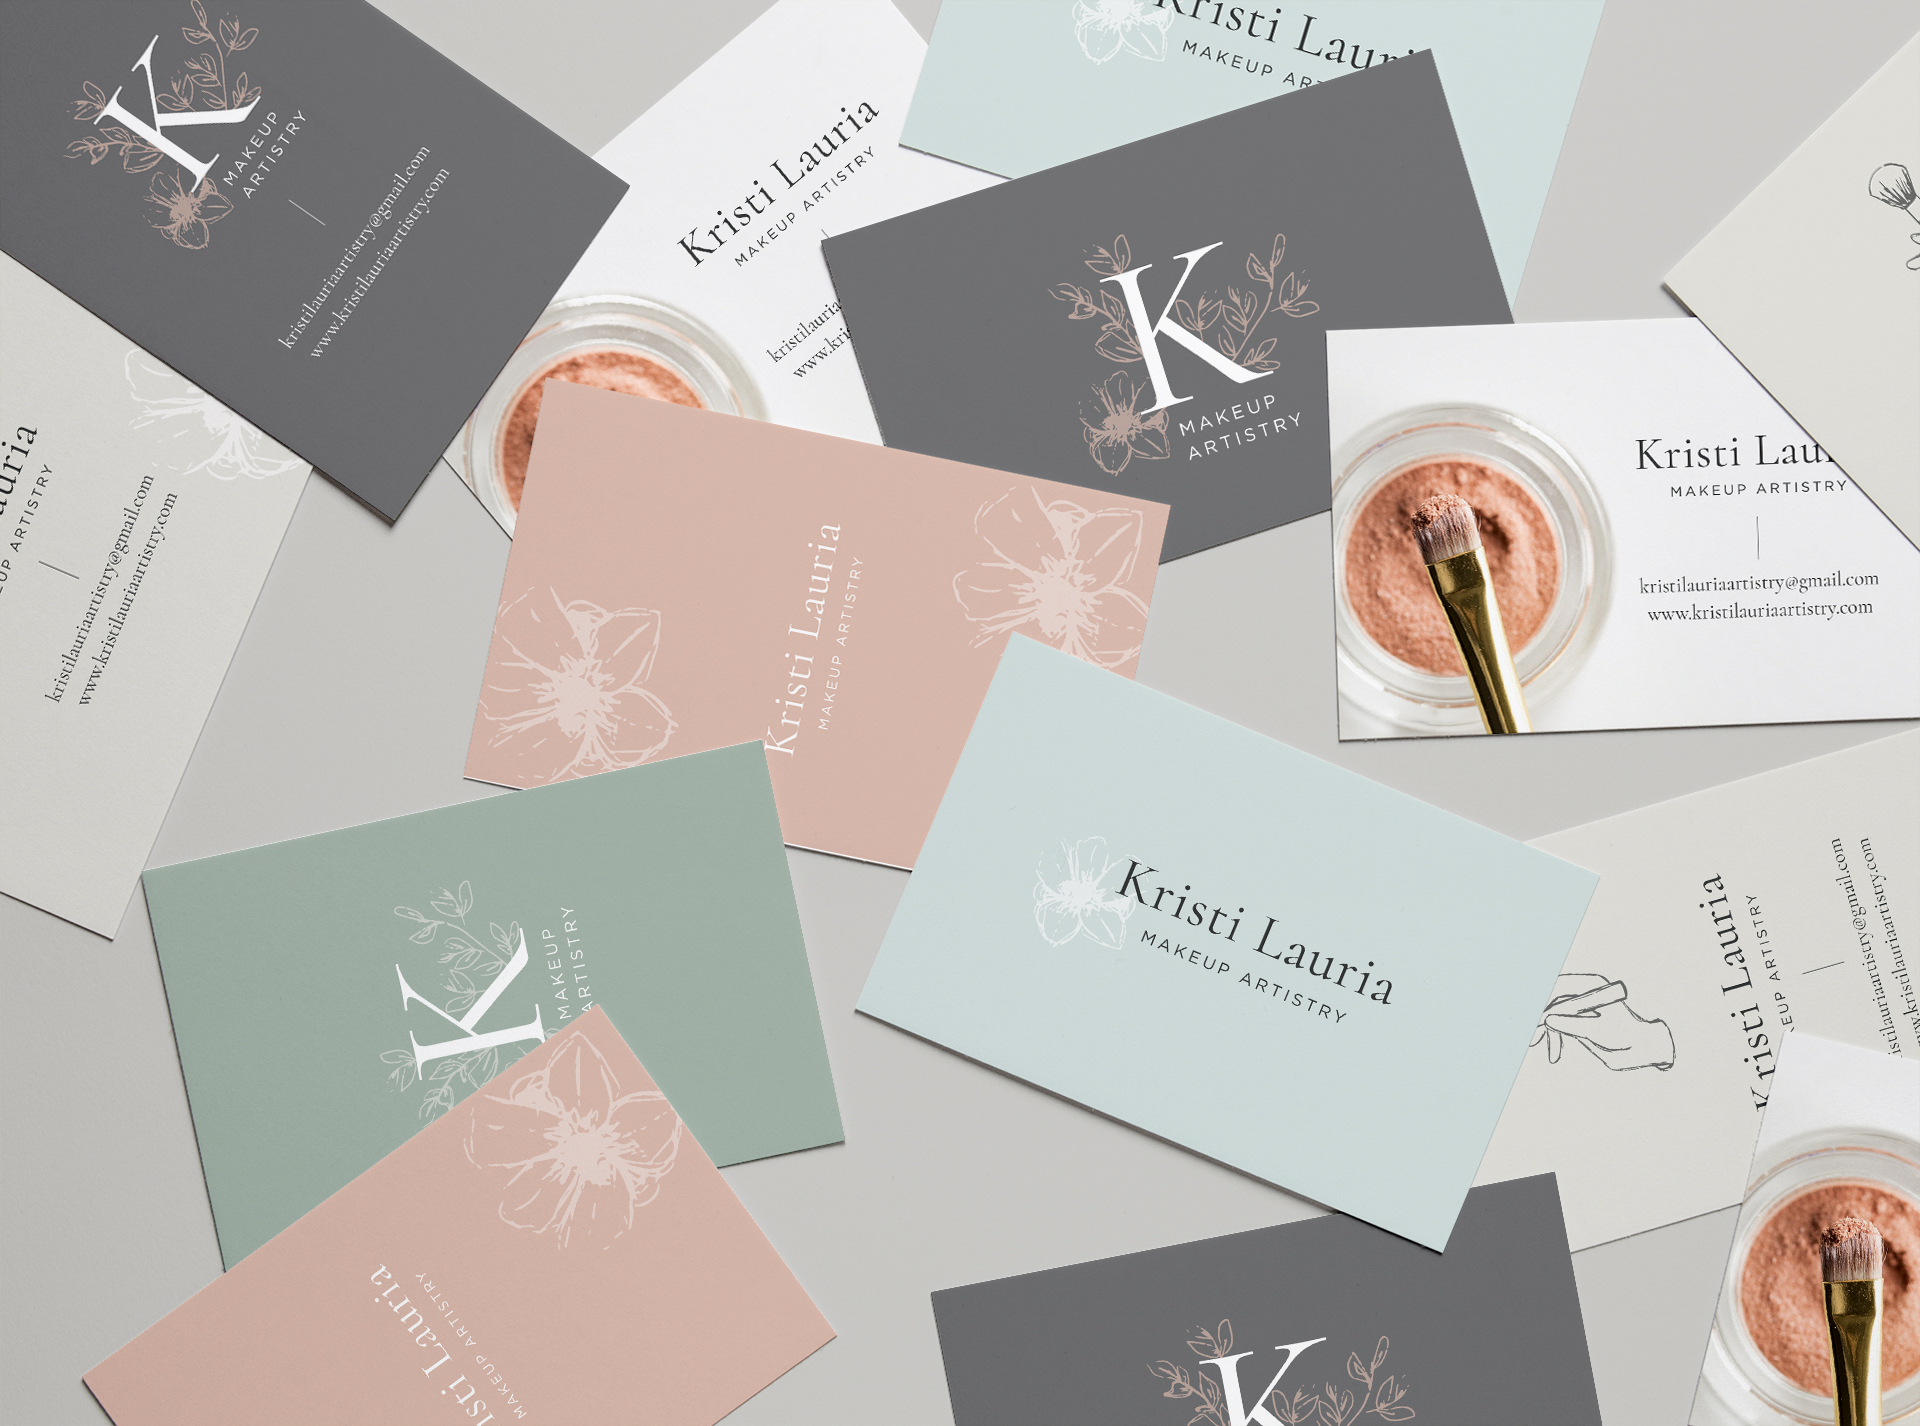 kristi-lauria-business-cards-scattered.jpg